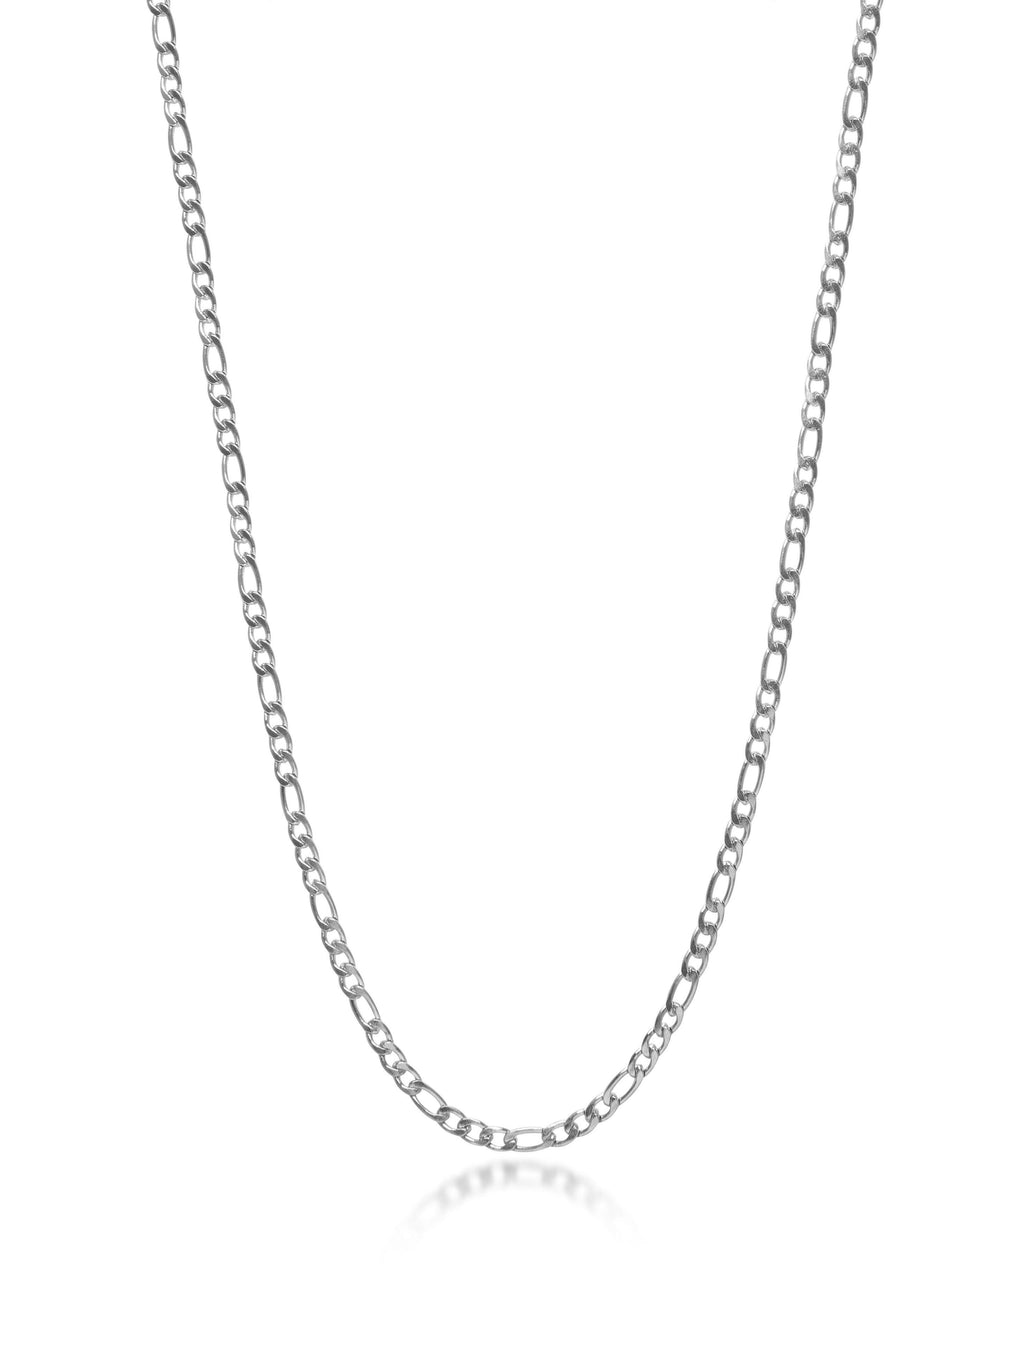 Men's Silver Figaro Chain